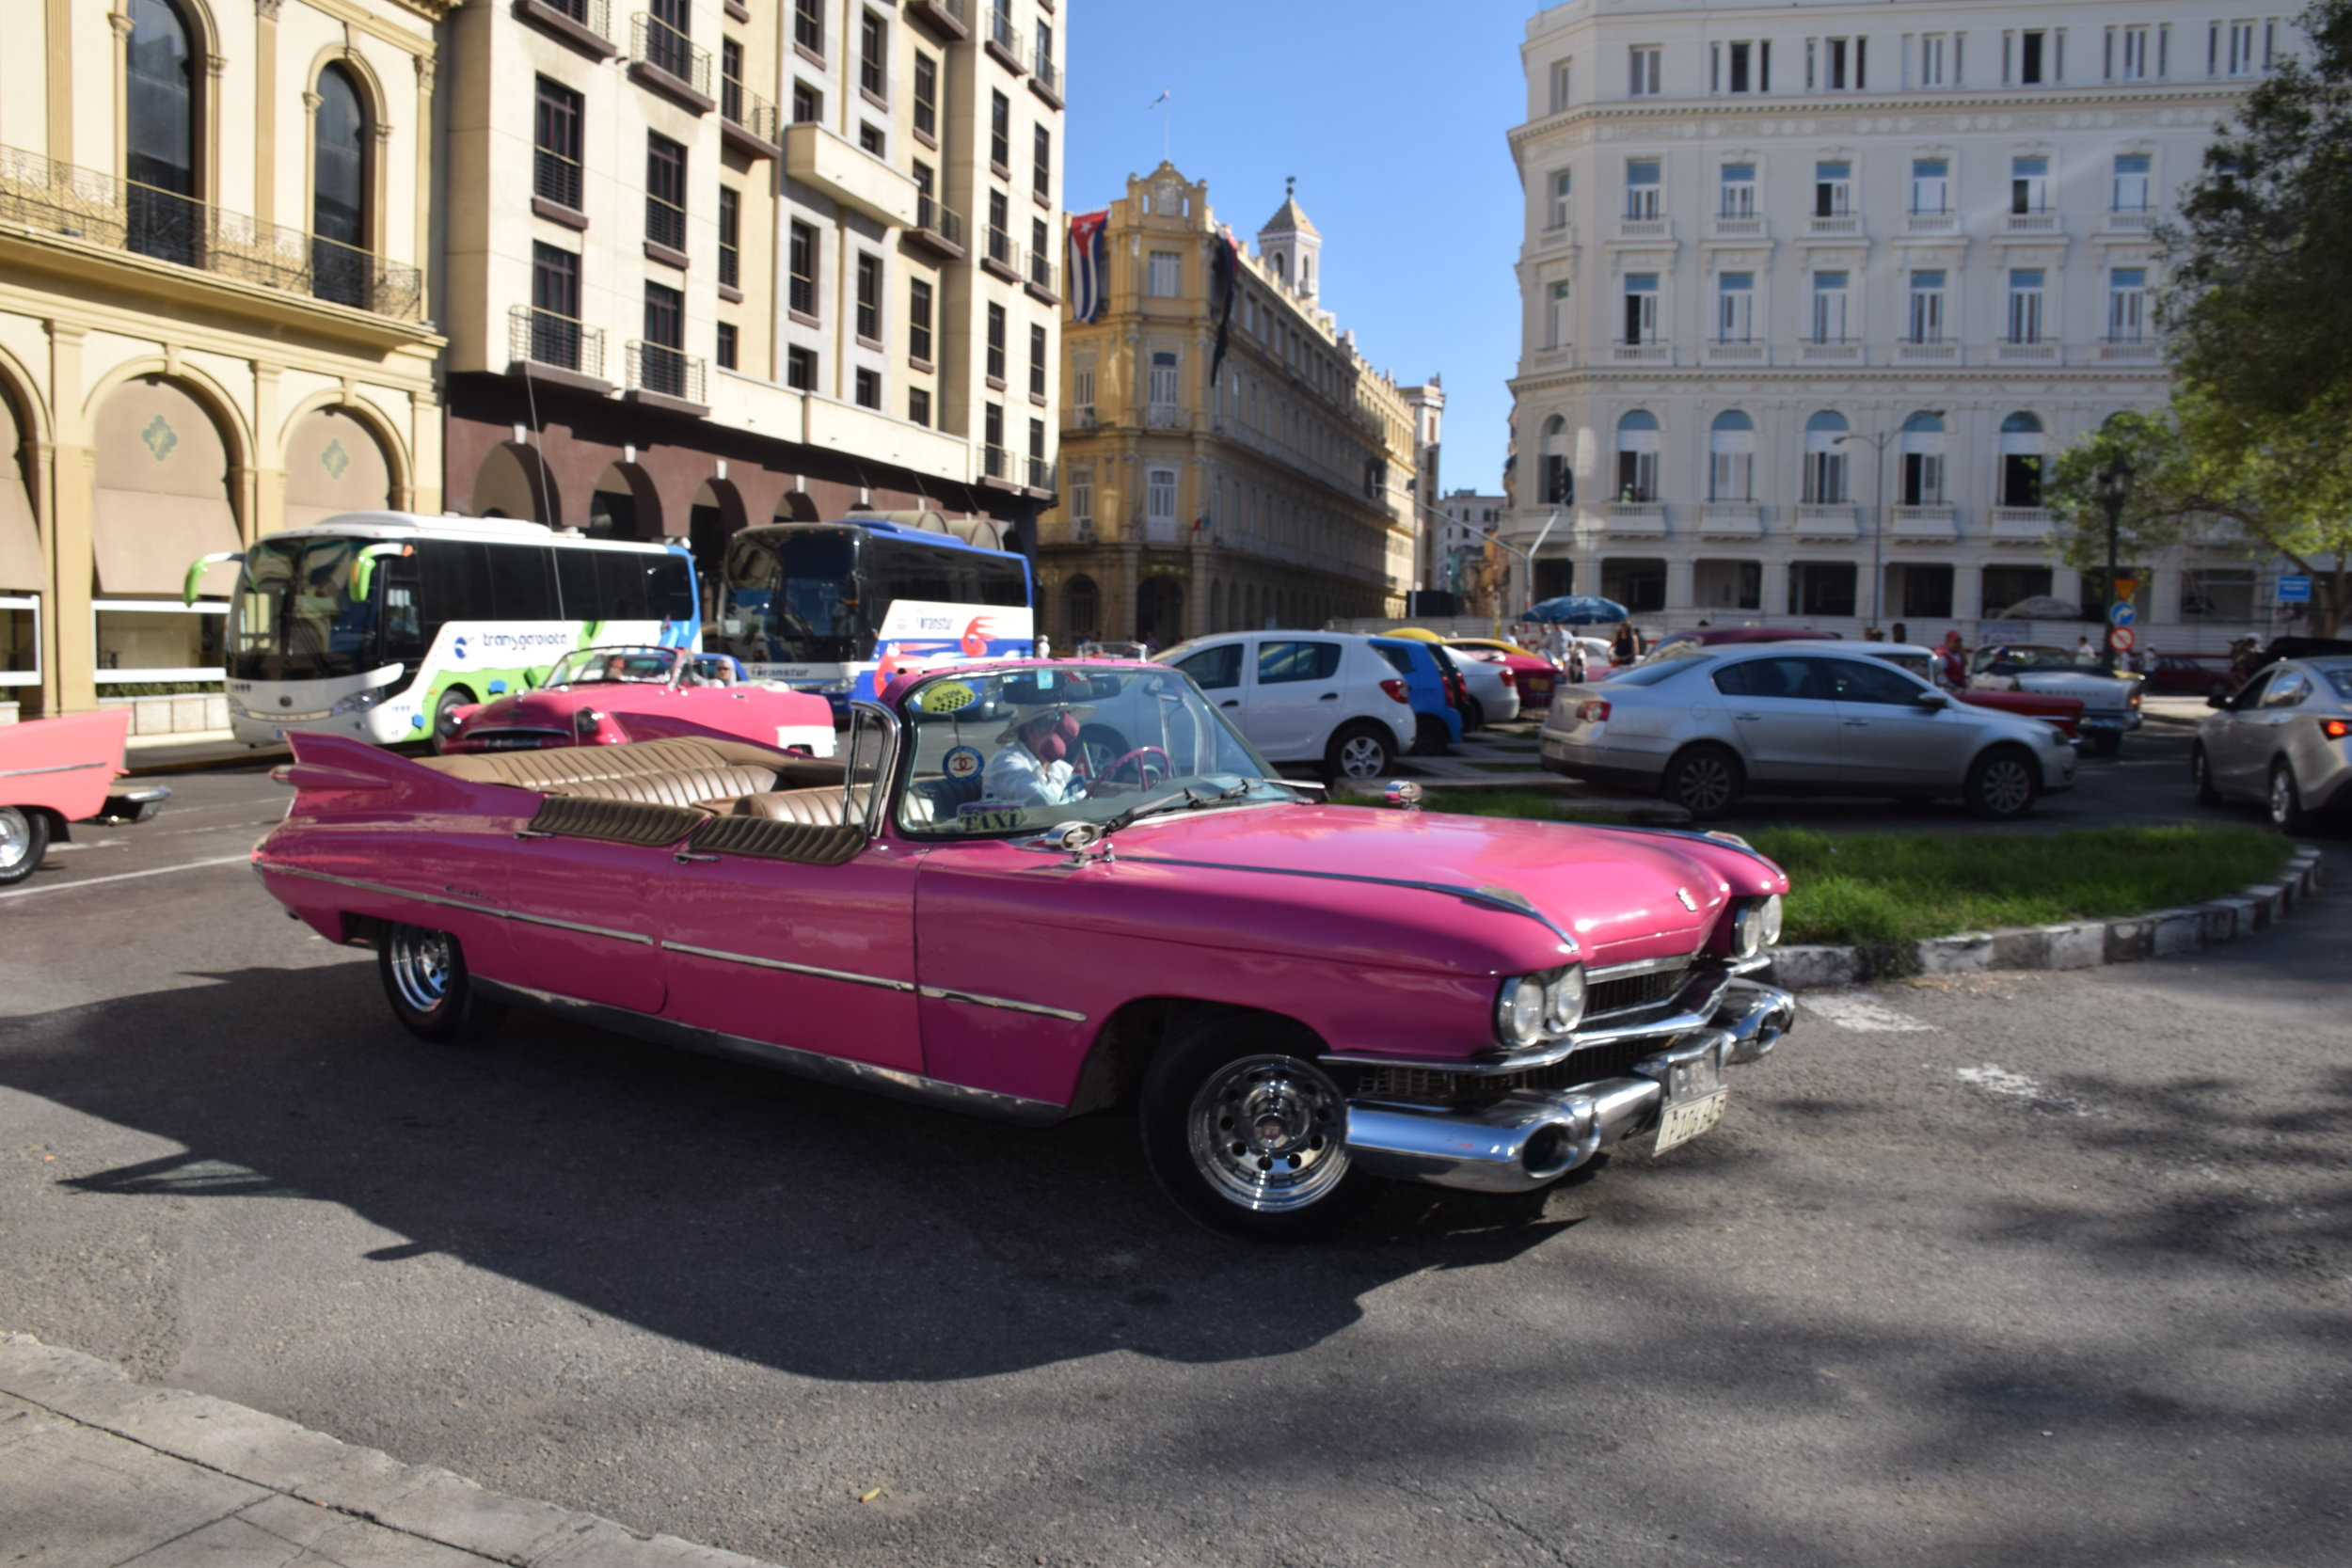 American Cars used as Taxis